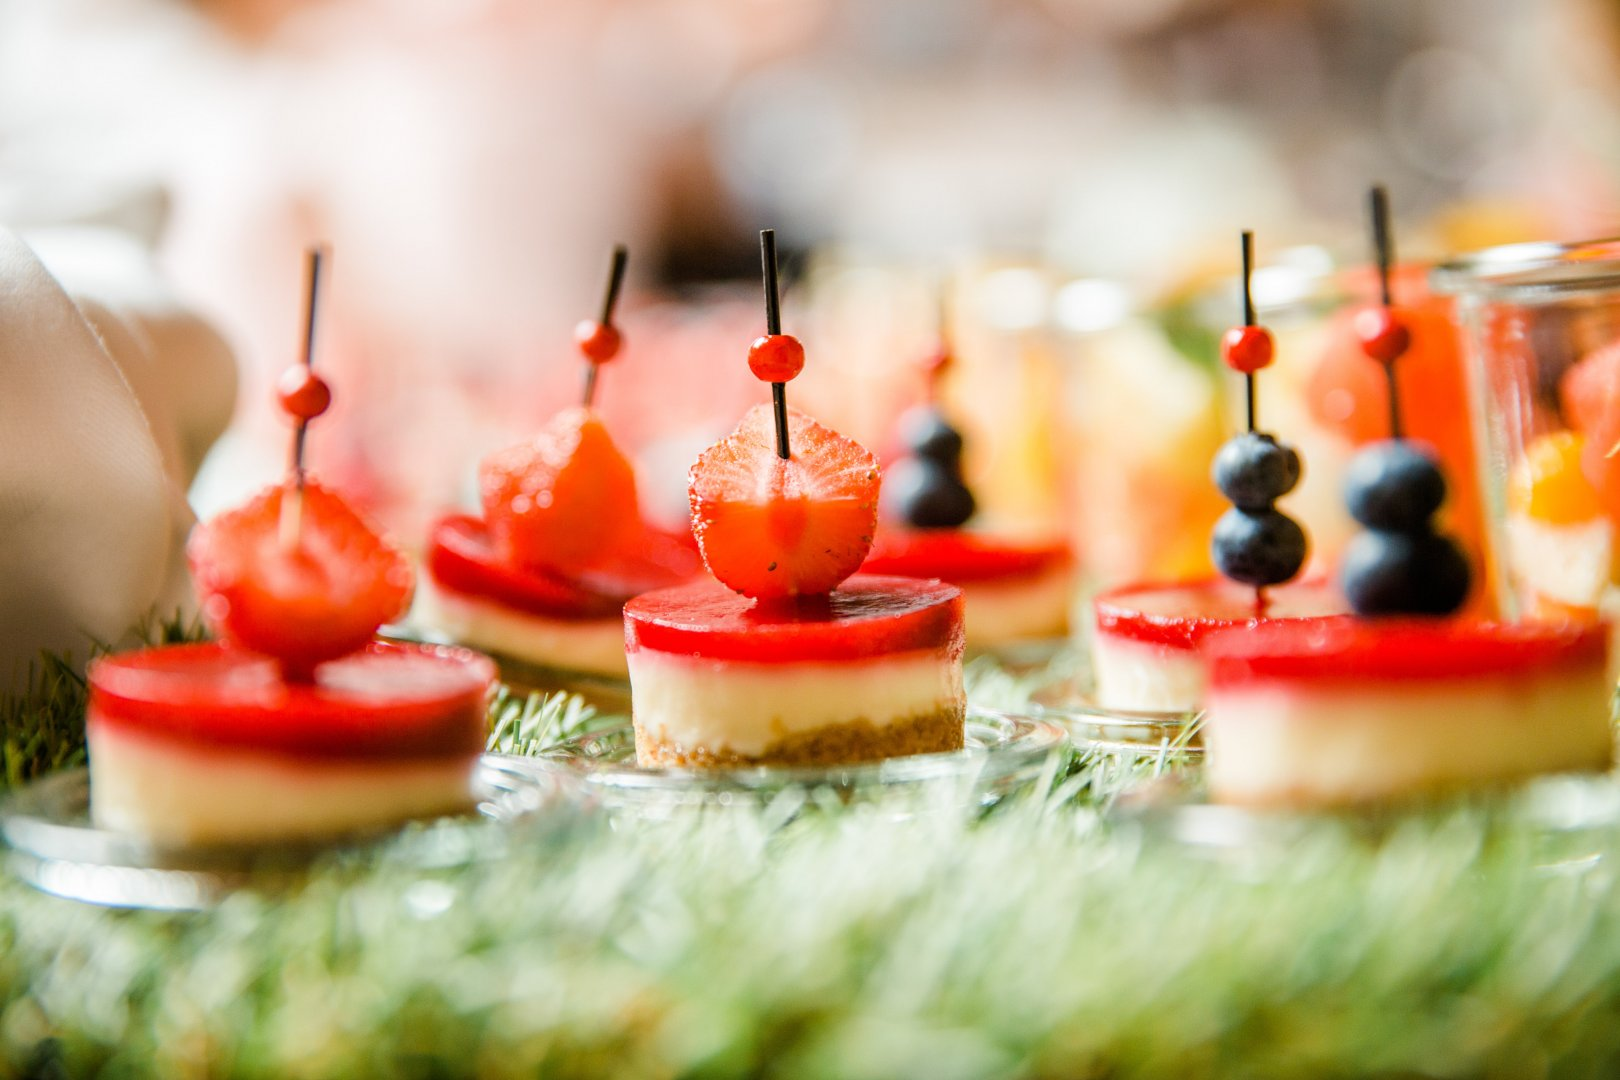 Food Lighting Finger food Dessert Sweetness Canapé Candle Cuisine appetizer Dish Hors d'oeuvre Birthday Party Pincho Baked goods Delicacy Fruit Ingredient Produce